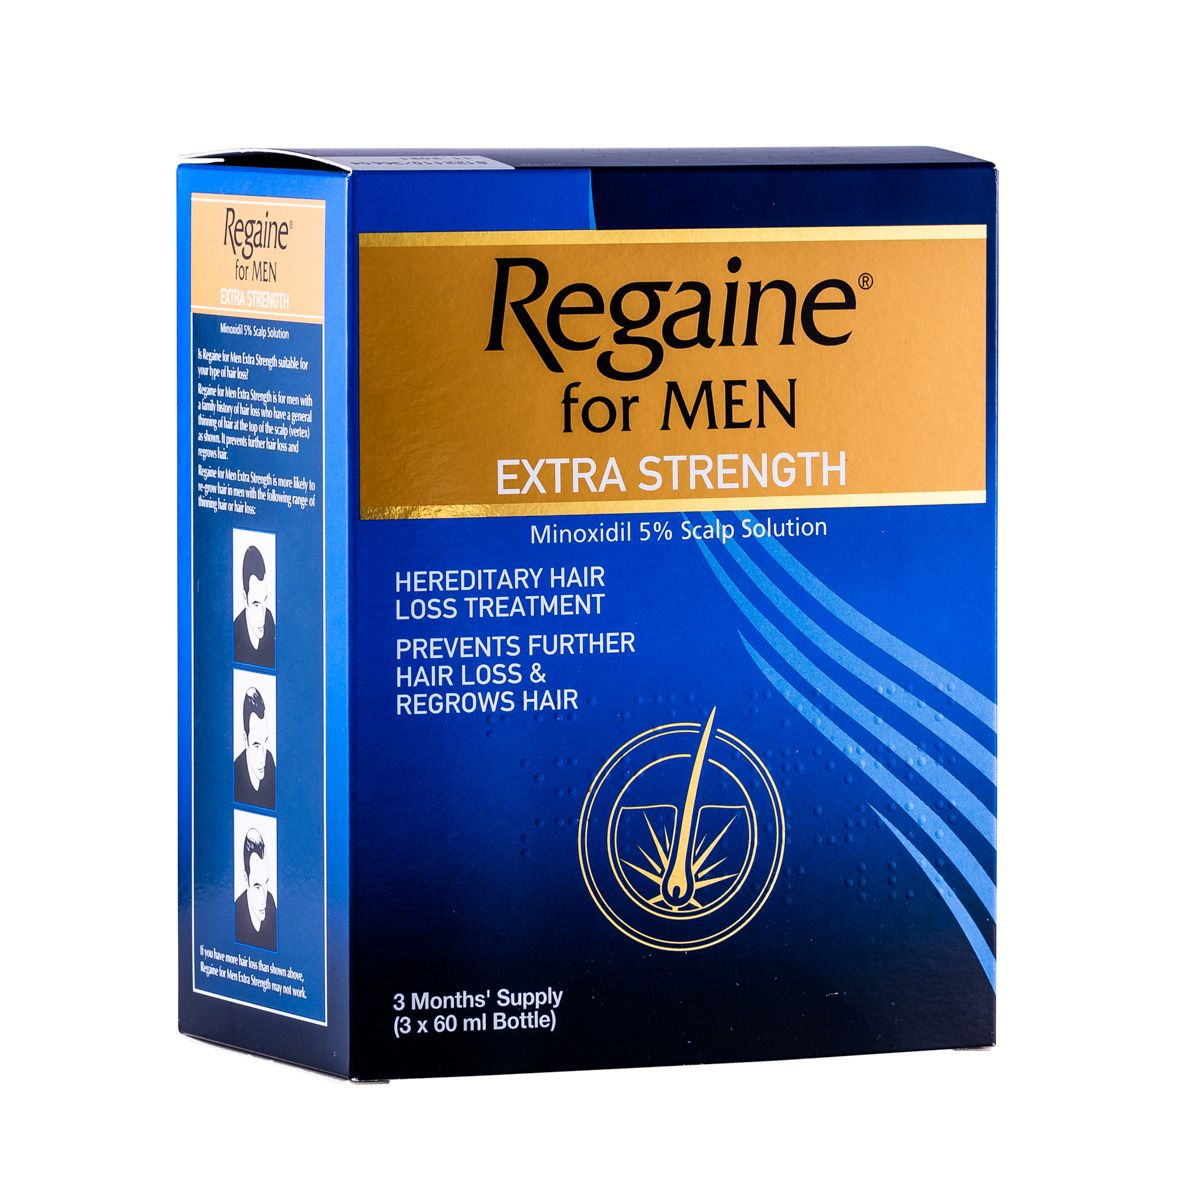 Regaine For Men Extra Strength - 3 Months' Supply